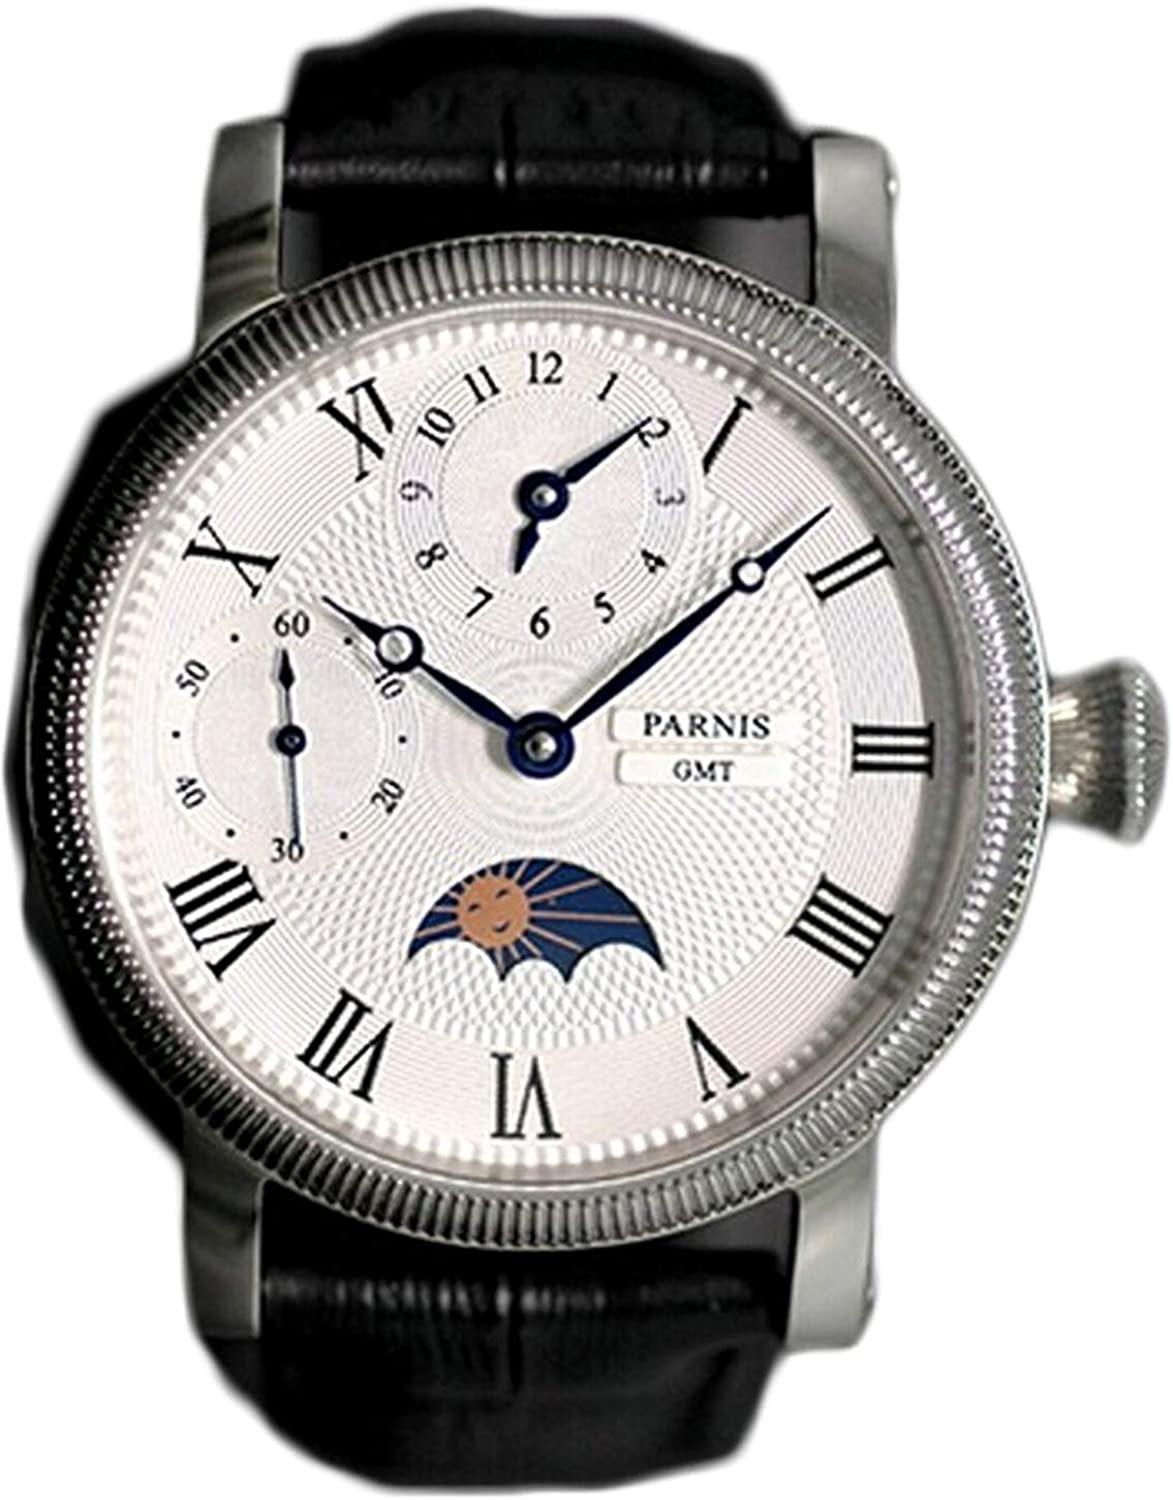 Parnis Moonphase watch